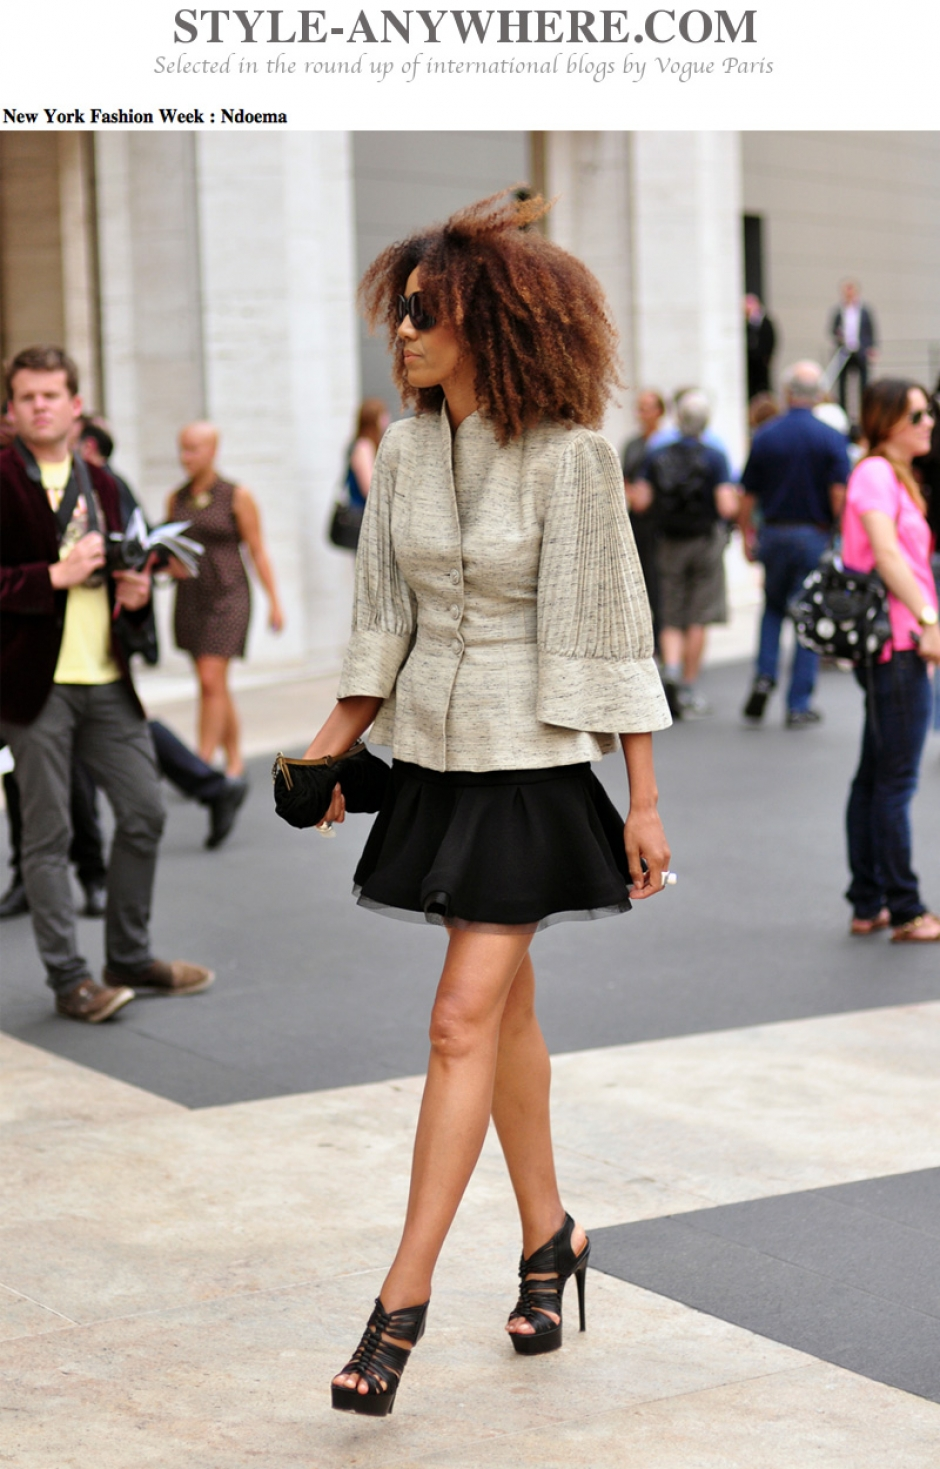 Ndoema wears Alexander Wang dress, L.A.M.B. platform sandals, Sigerson Morrison clutch and vintage jacket